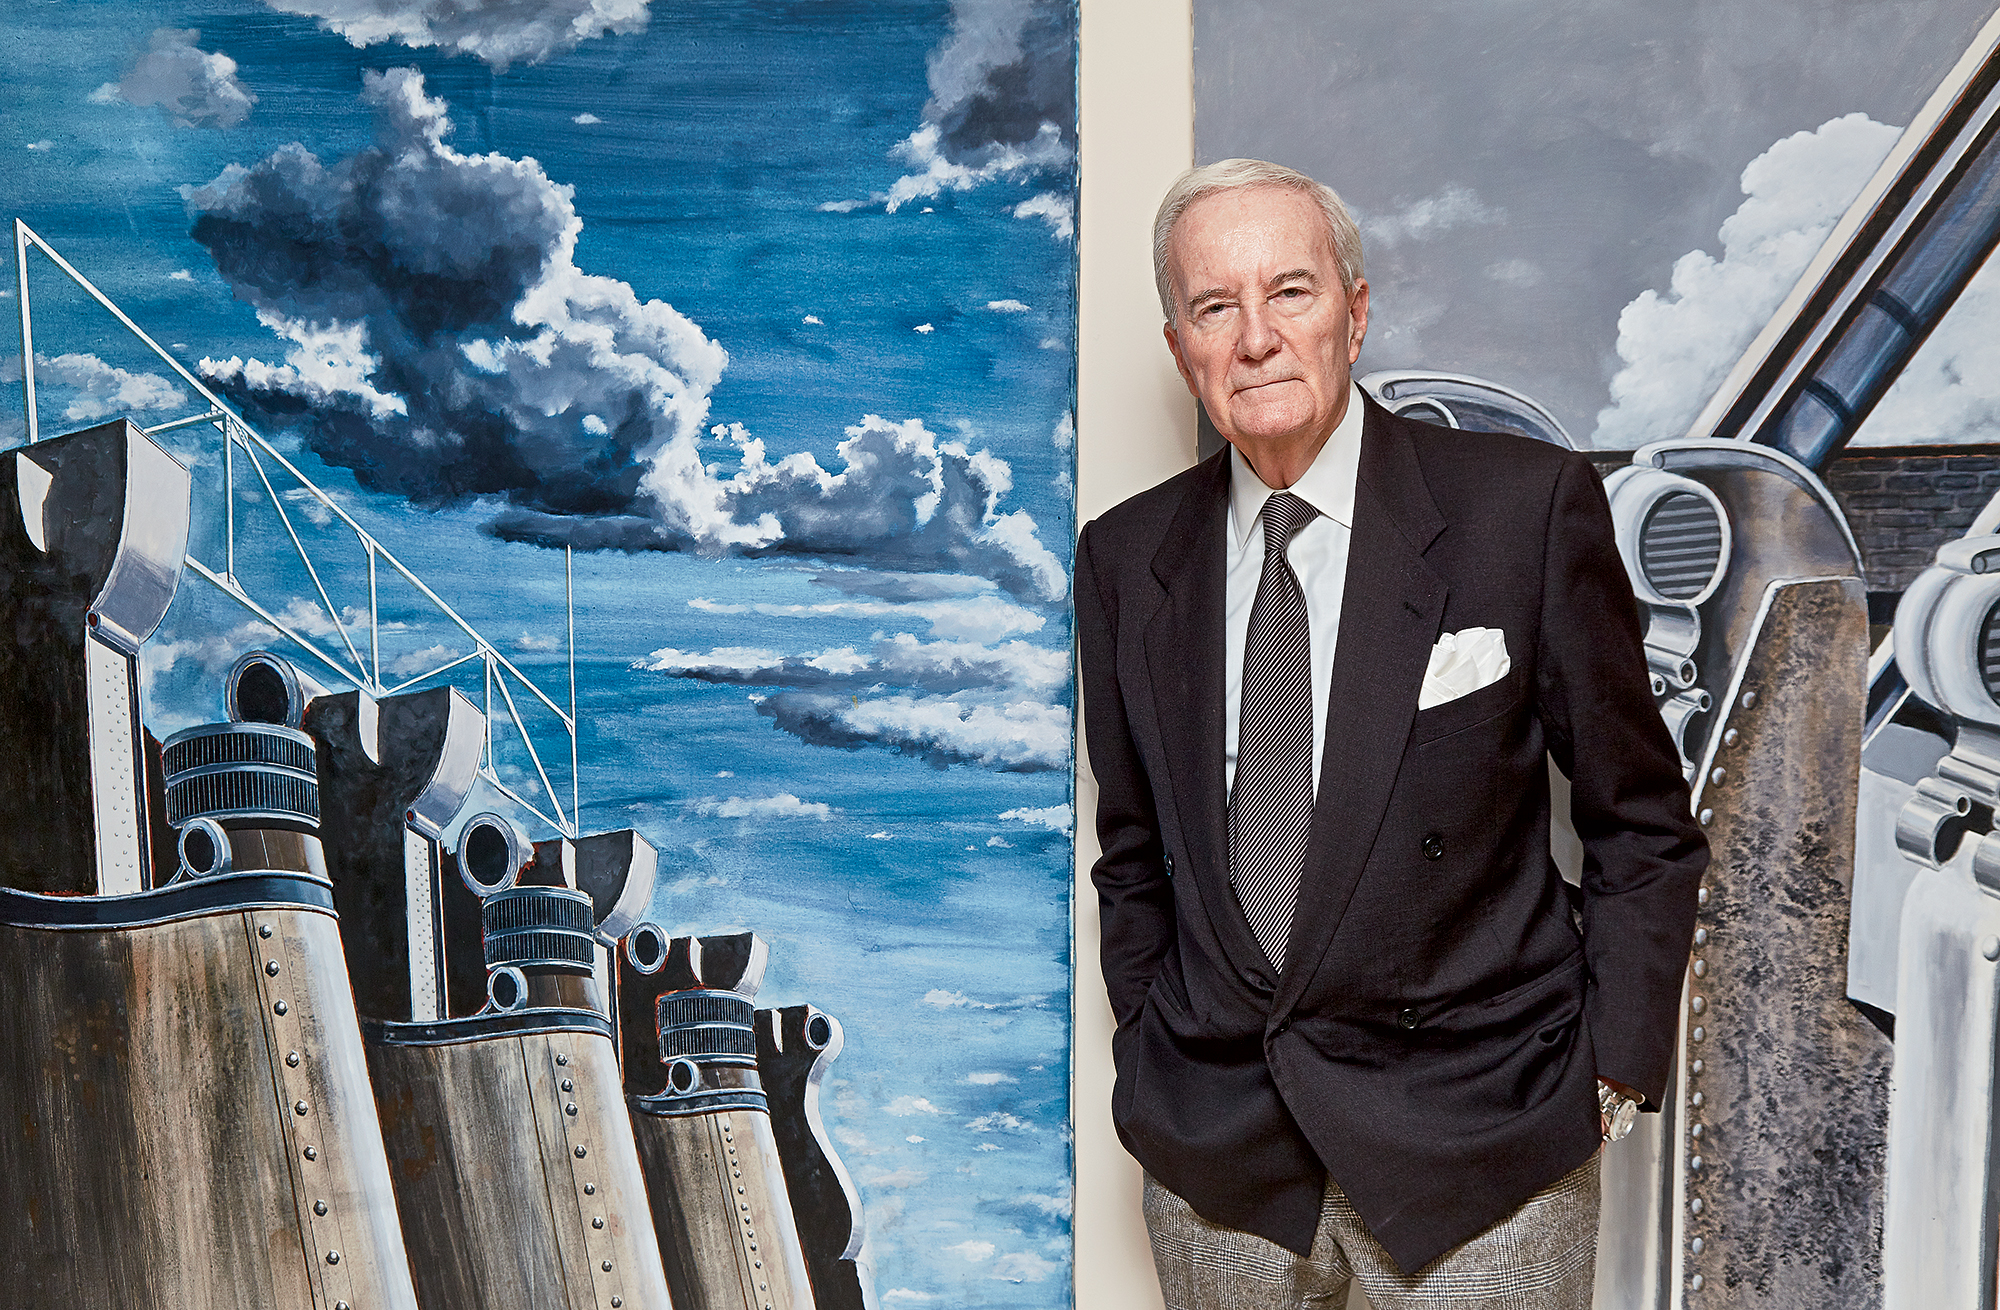 Architect Arthur Cotton Moore in front of his own paintings at his home in the Watergate. Photograph by Jeff Elkins.